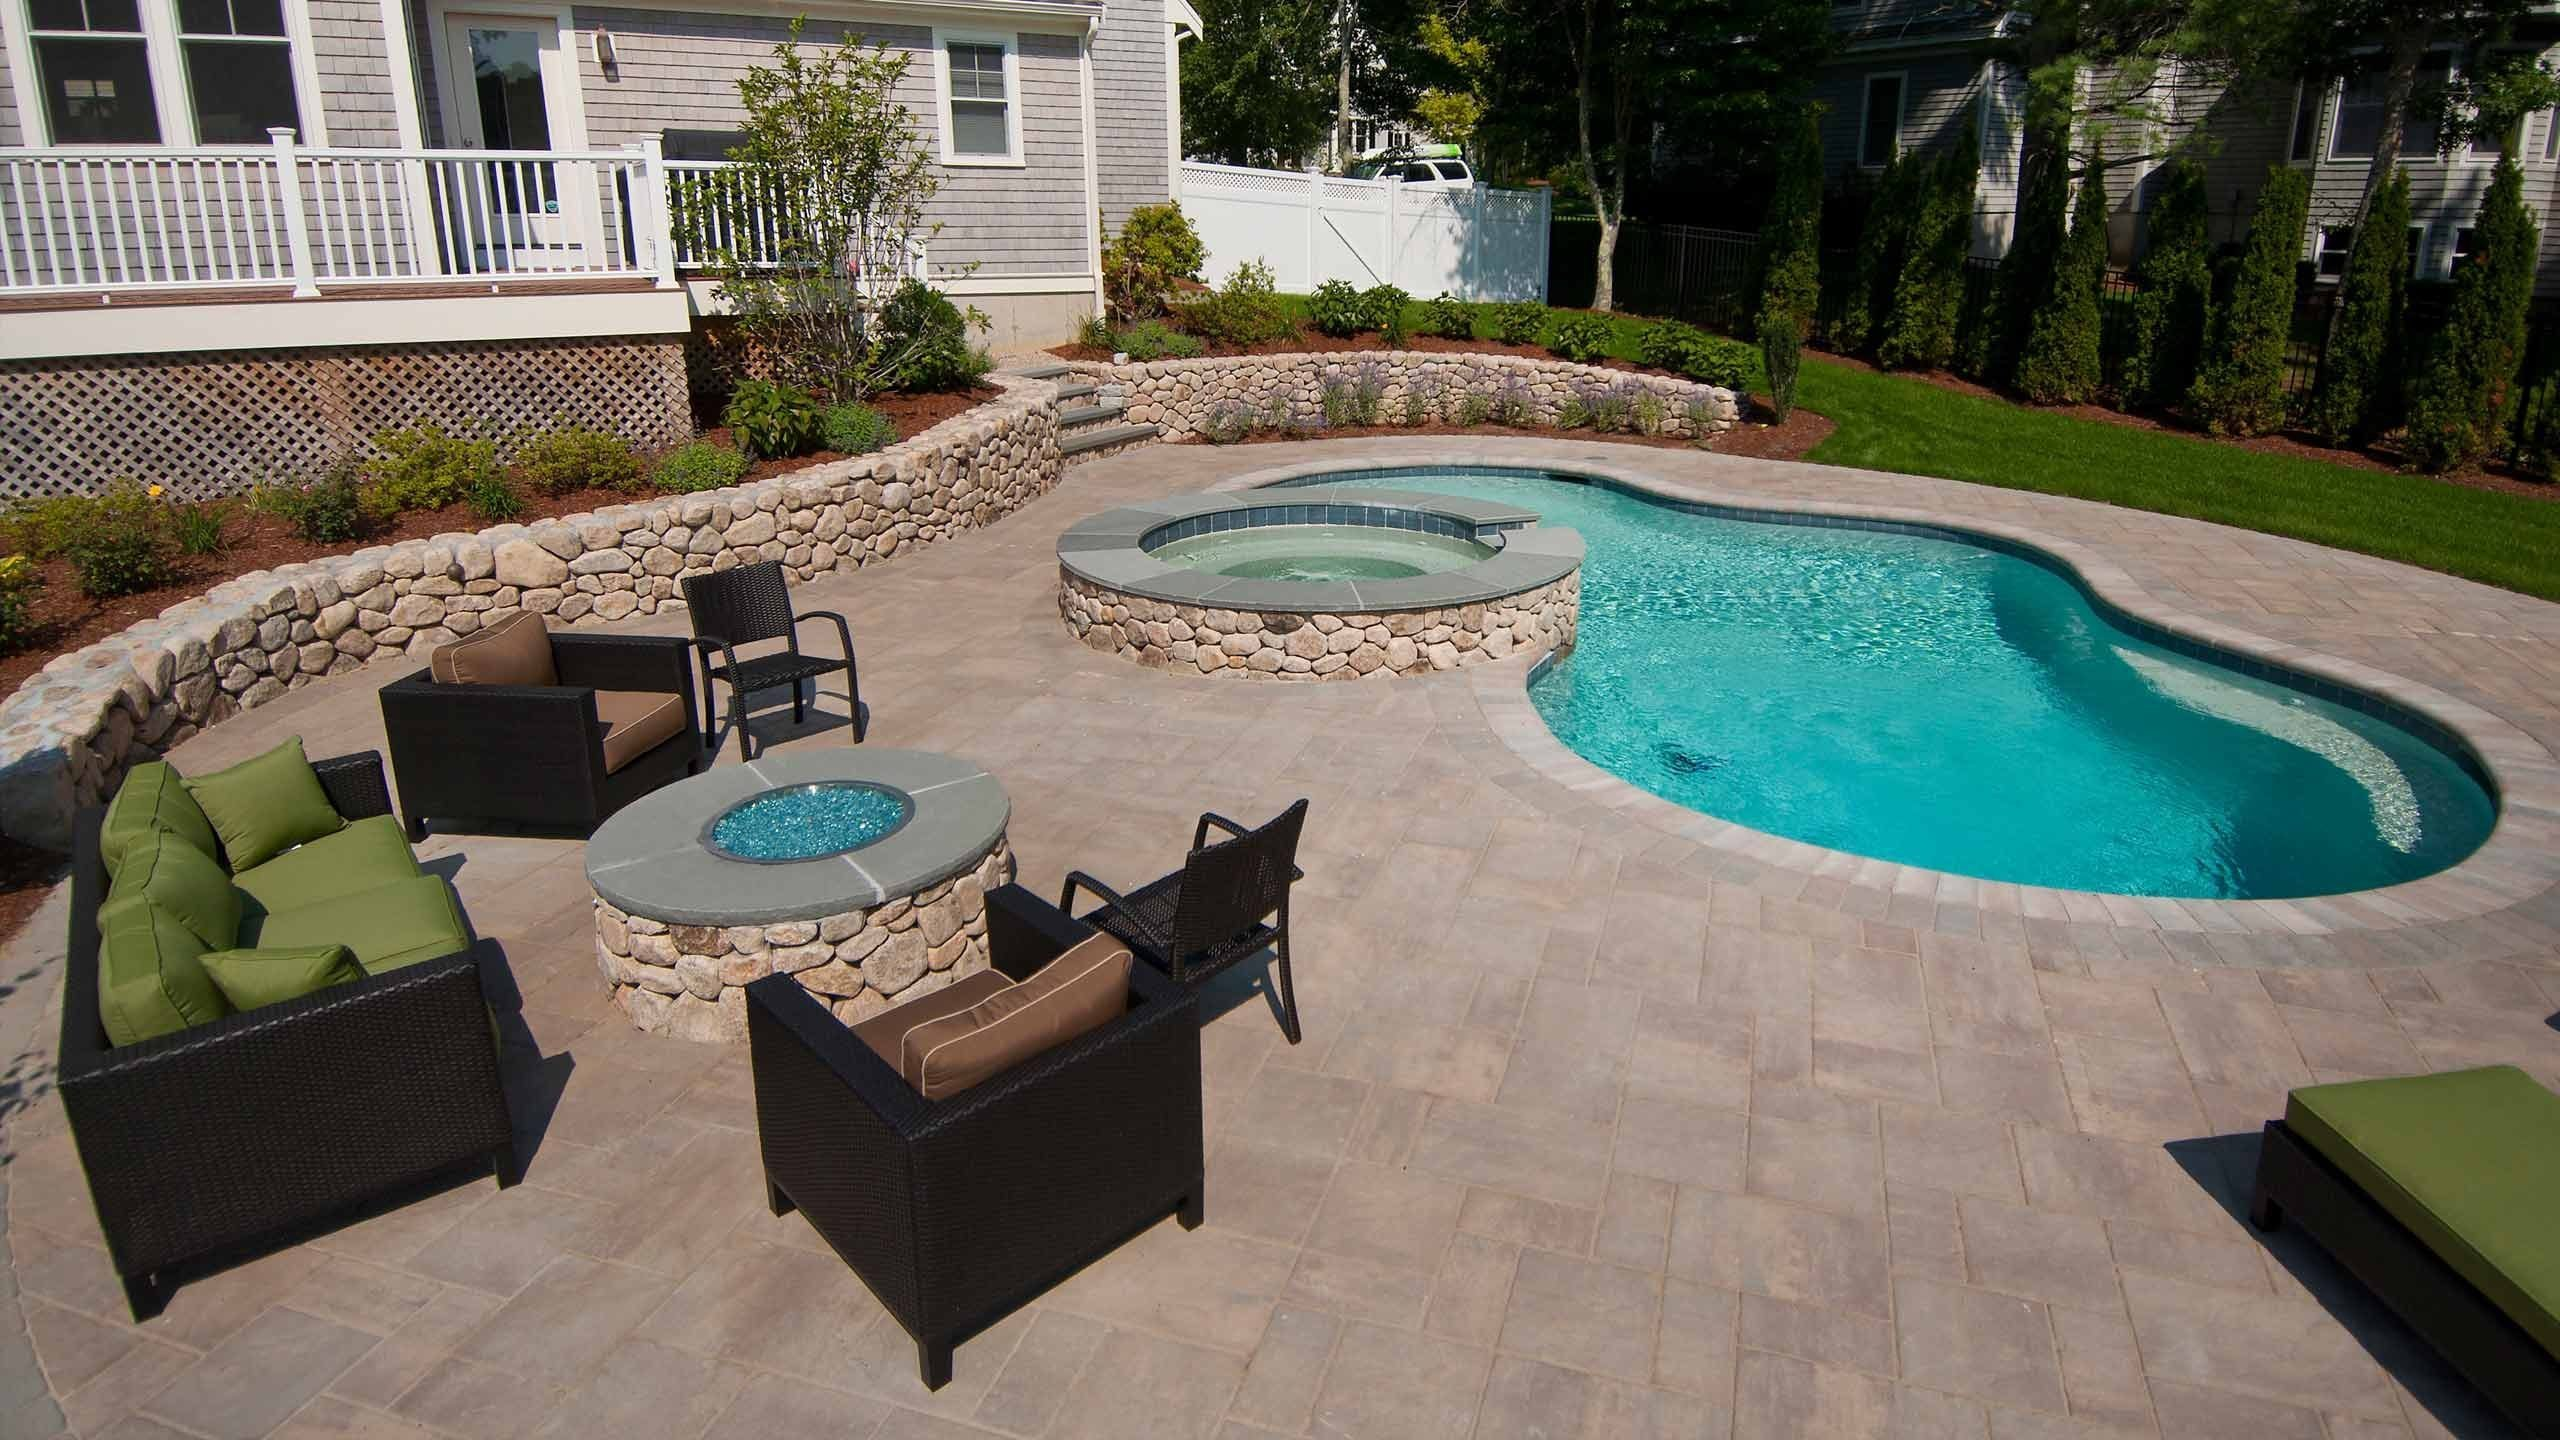 Pool Design Pool Maintenance Pool Installation Pool Renovation Shoreline Pools Cape Cod